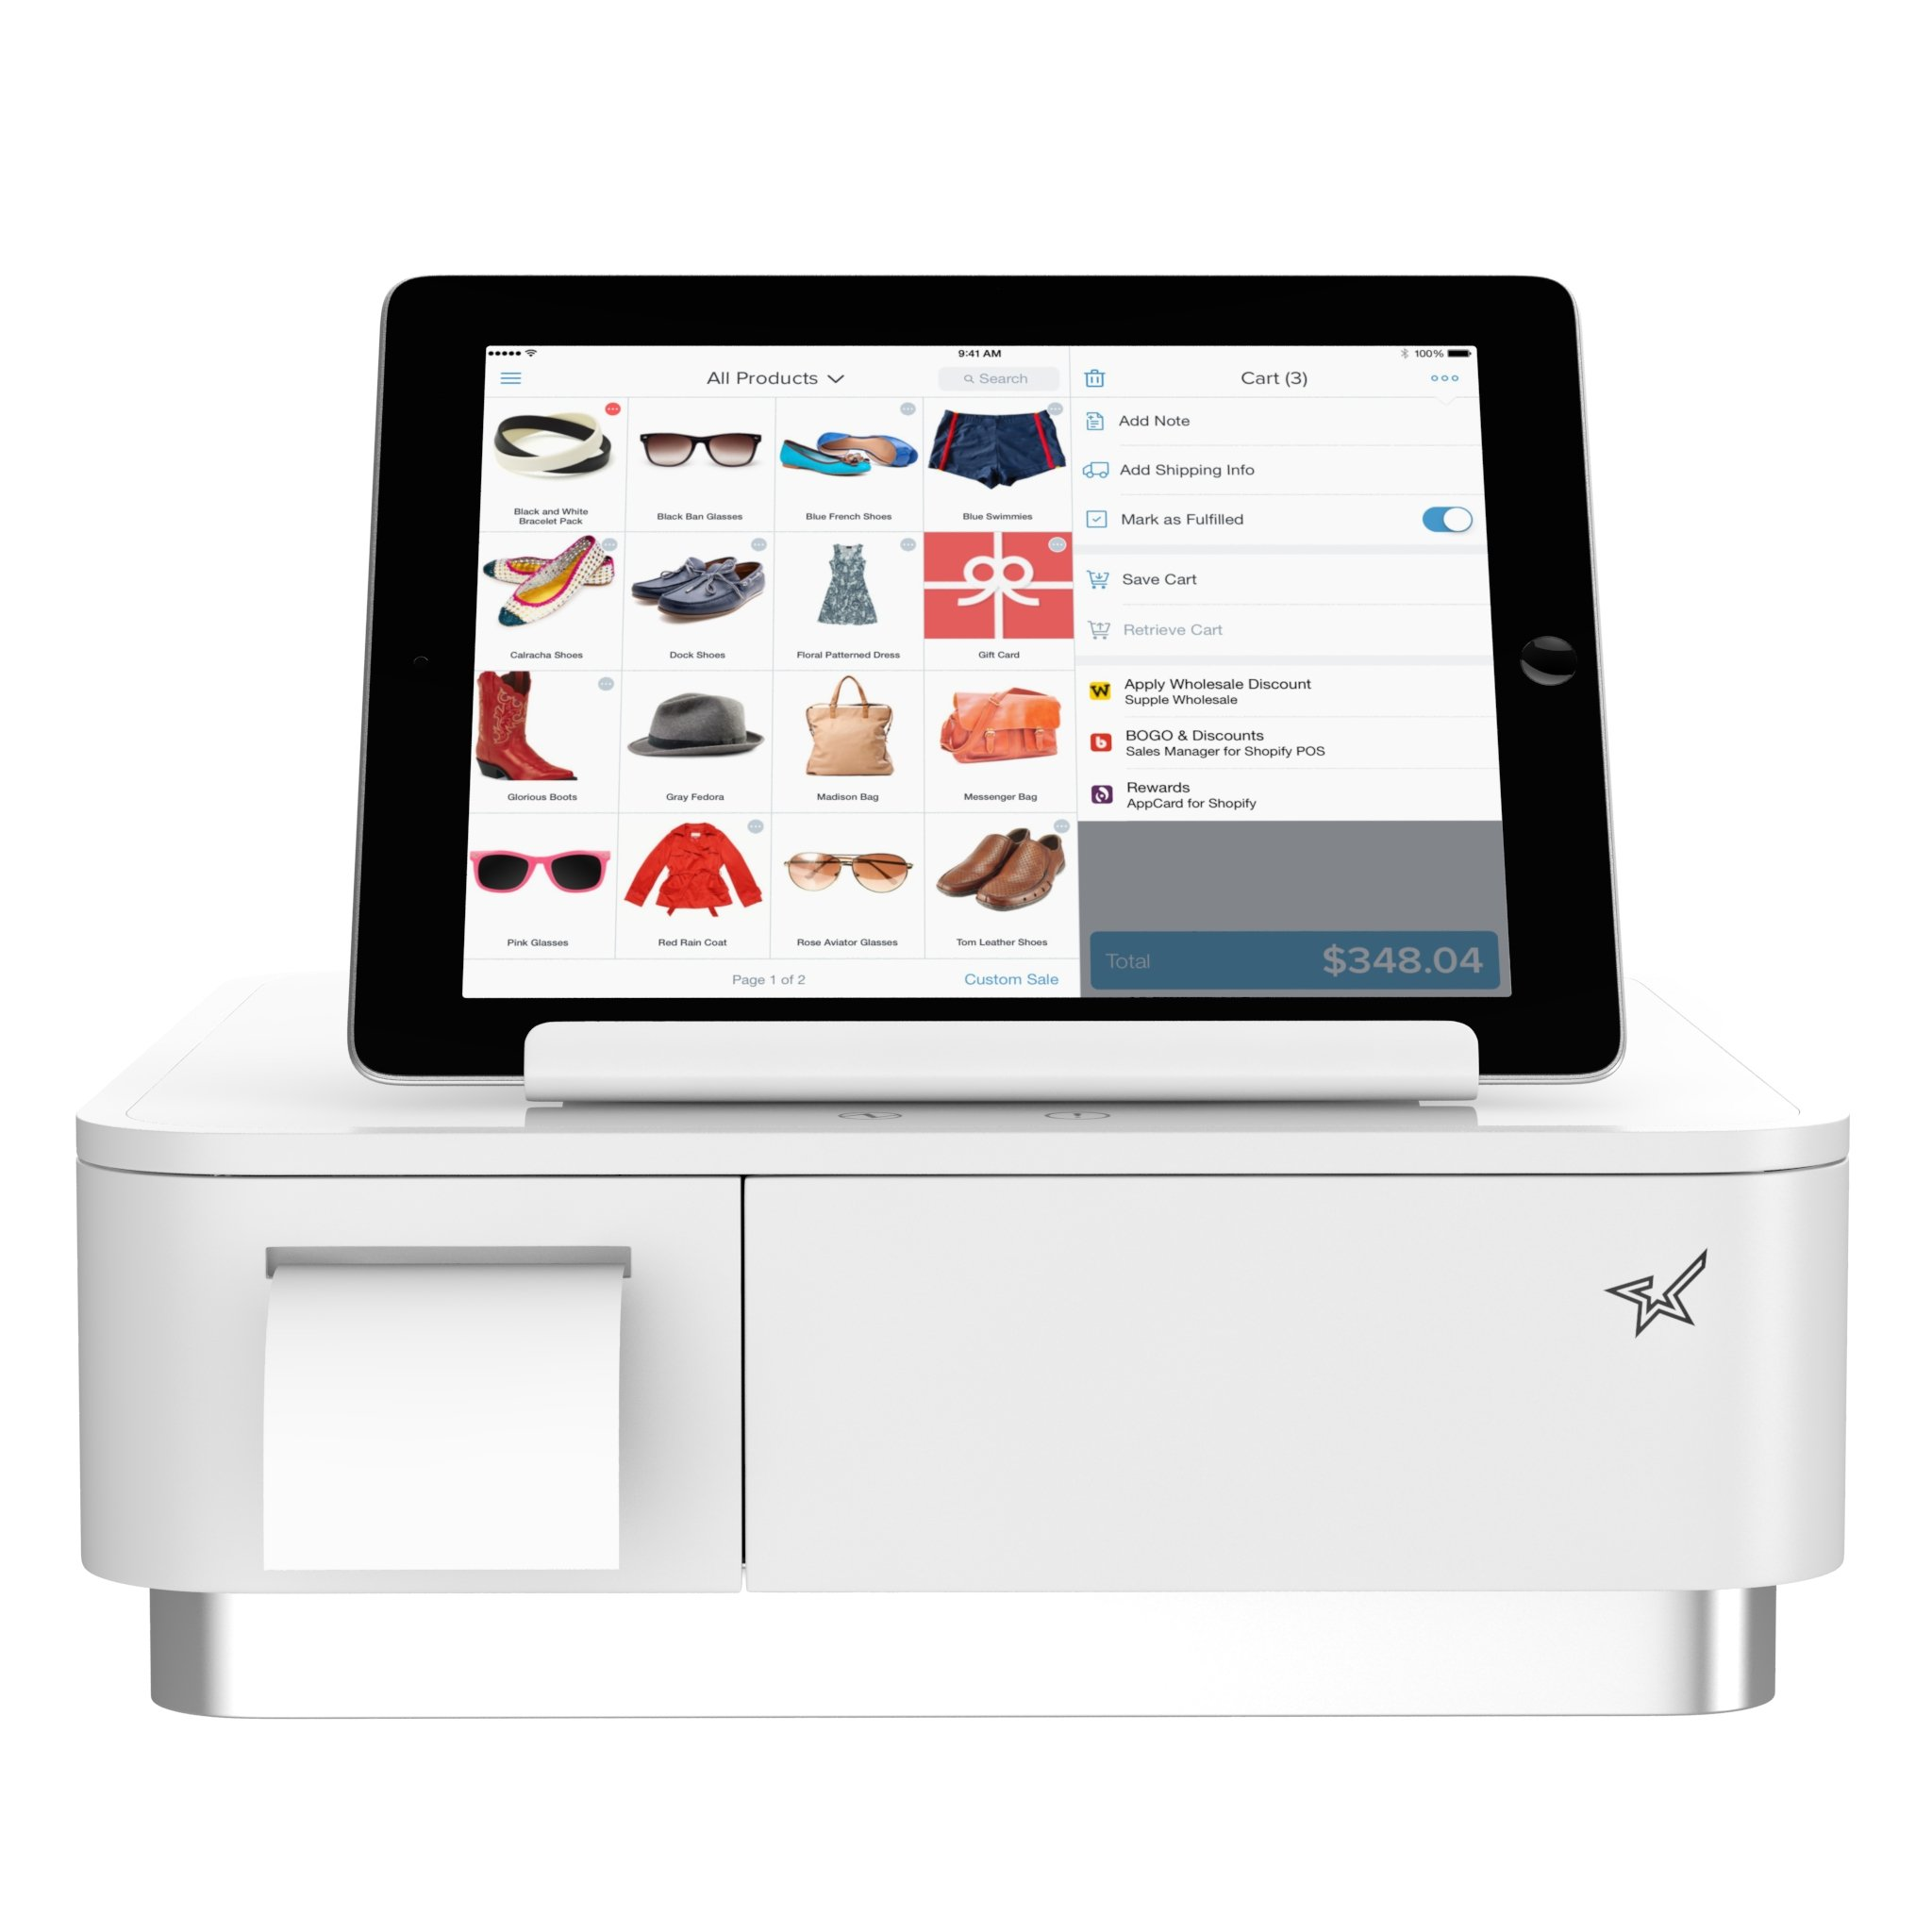 releases for at drawer display point cash mobile sale of drawers apg displays rspa new to solutions s mpos brochure tabletpro htm interface